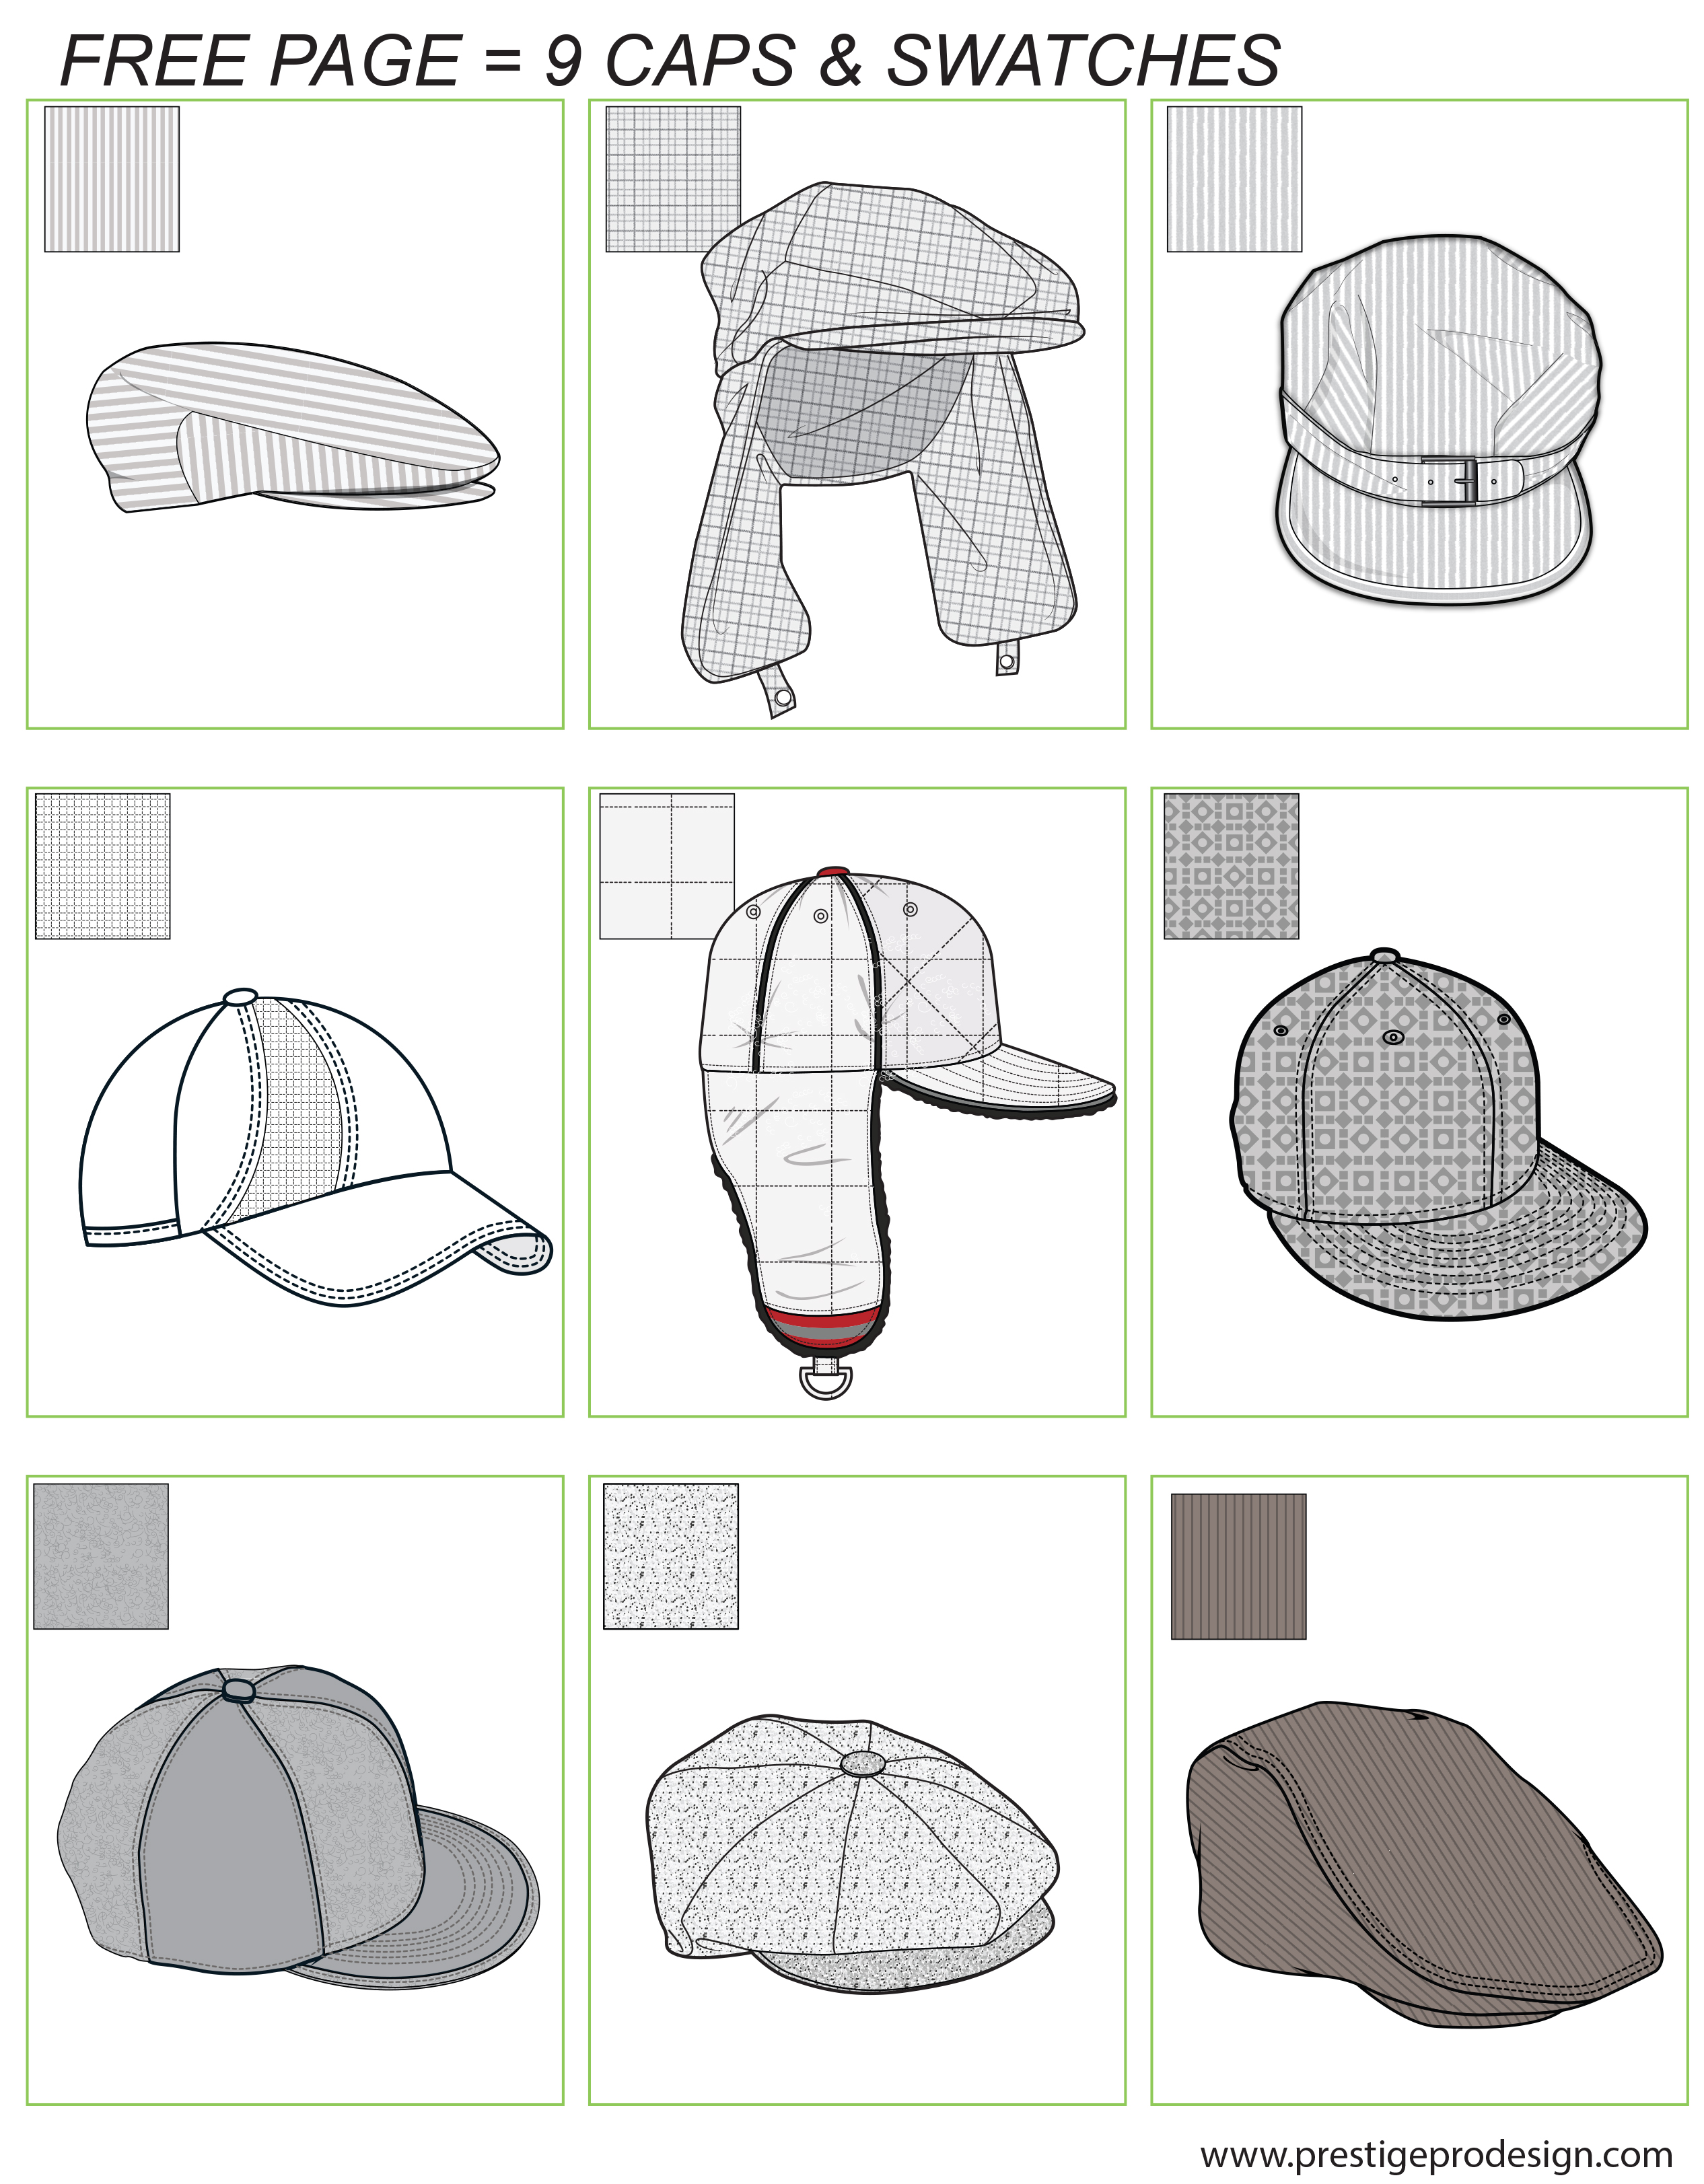 MH16_Men's Hats_Caps